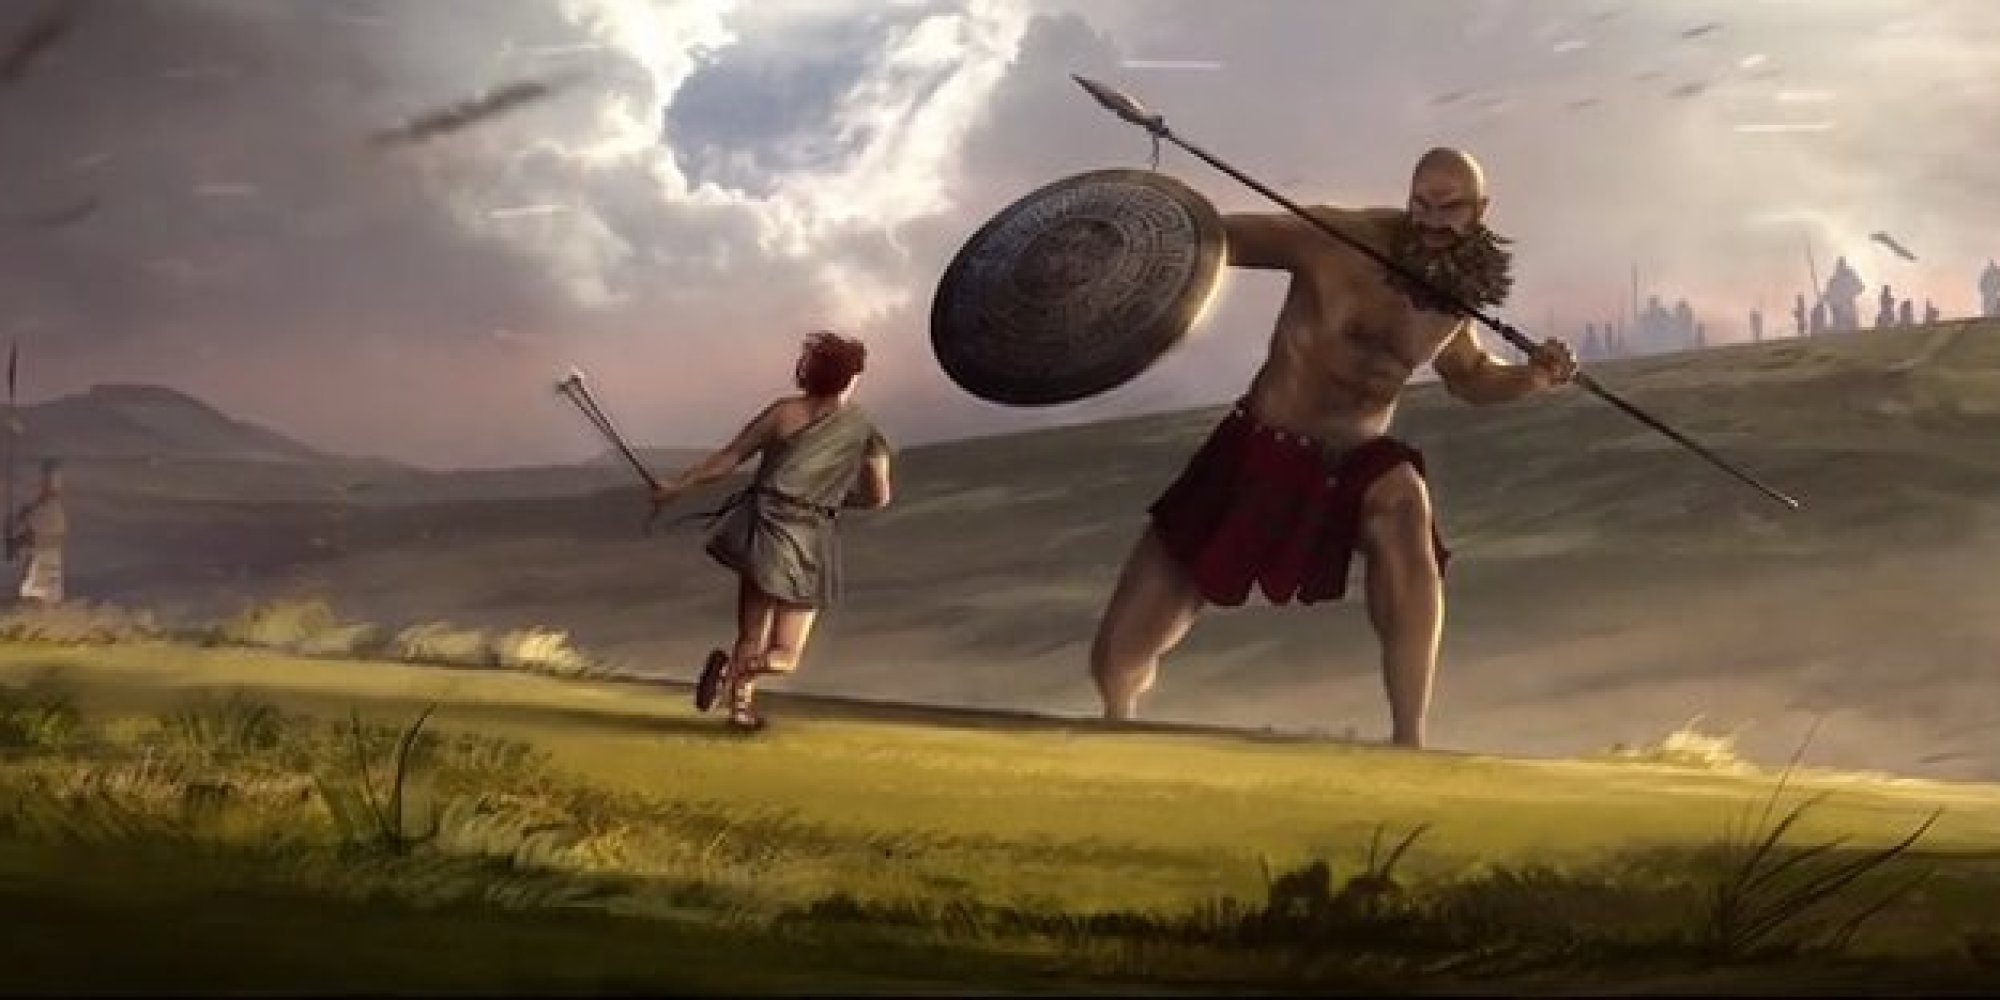 a comparison of the two leaders arthur becomes king and david and goliath A comparison of arthur becomes king and david and goliathtwo of the most renowned leaders of all time, king arthur and king david,have emerged from.